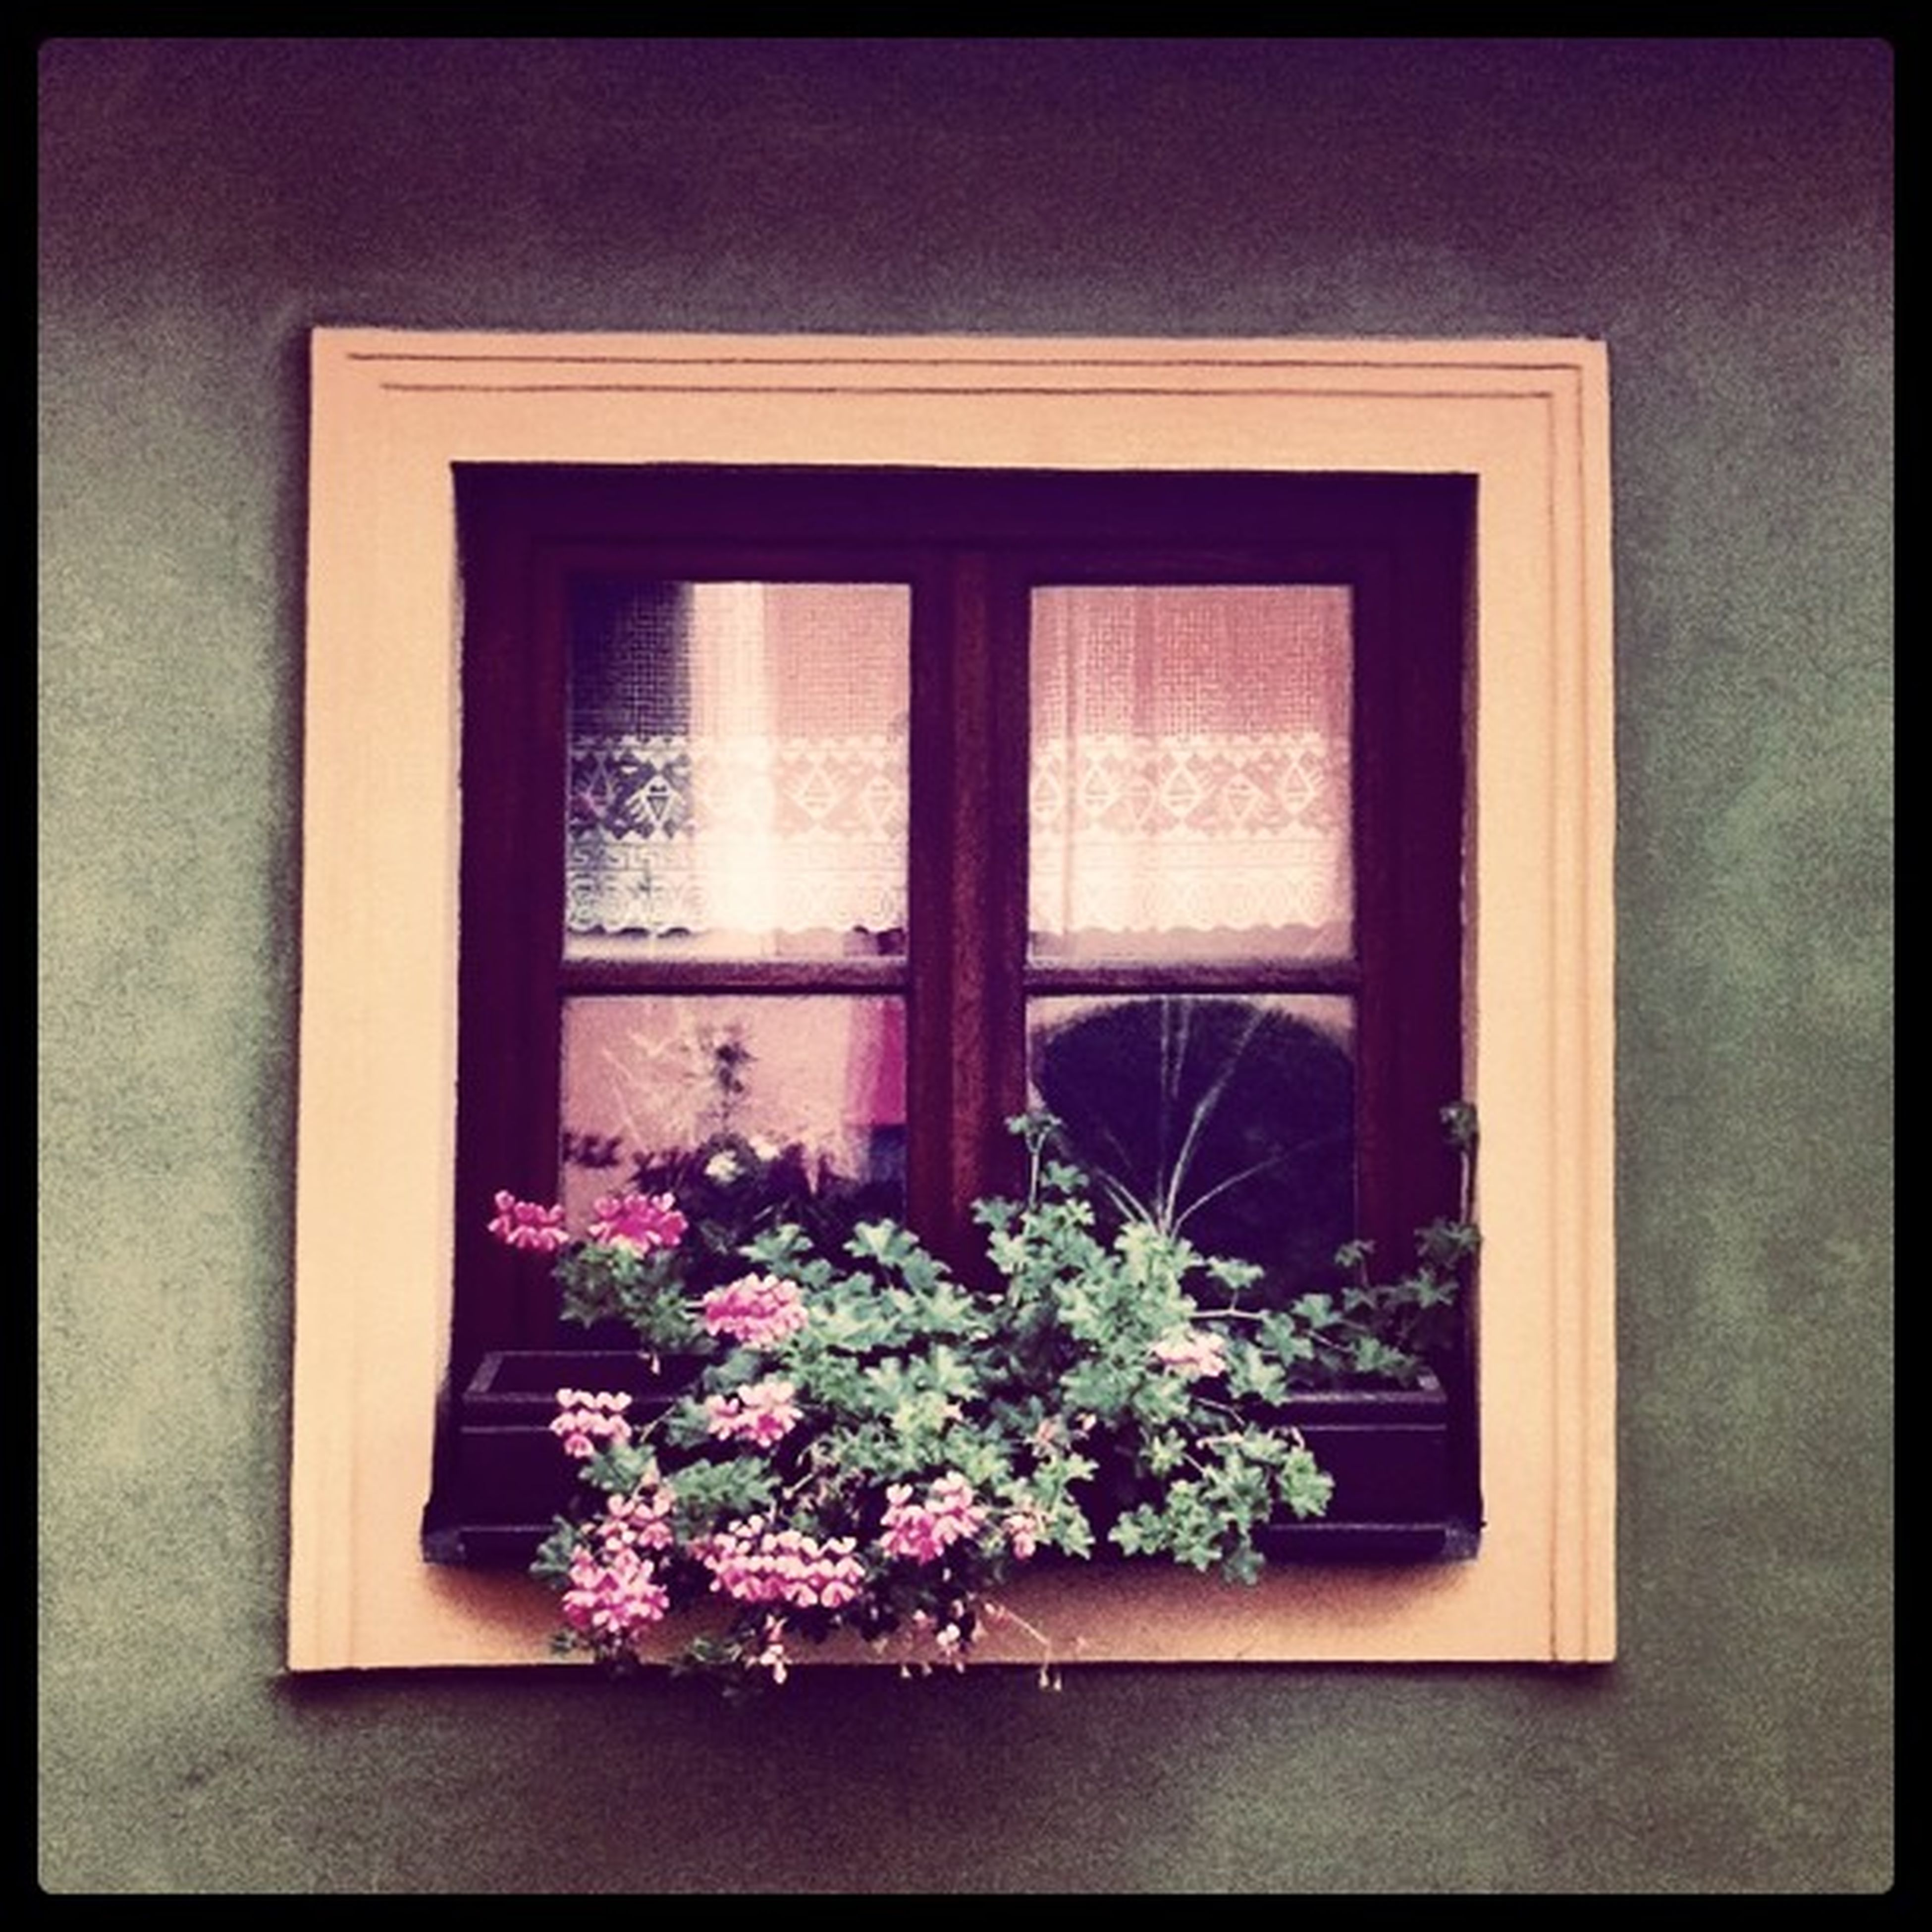 flower, window, growth, potted plant, plant, transfer print, freshness, house, architecture, building exterior, built structure, fragility, auto post production filter, window sill, flower pot, glass - material, nature, no people, beauty in nature, day